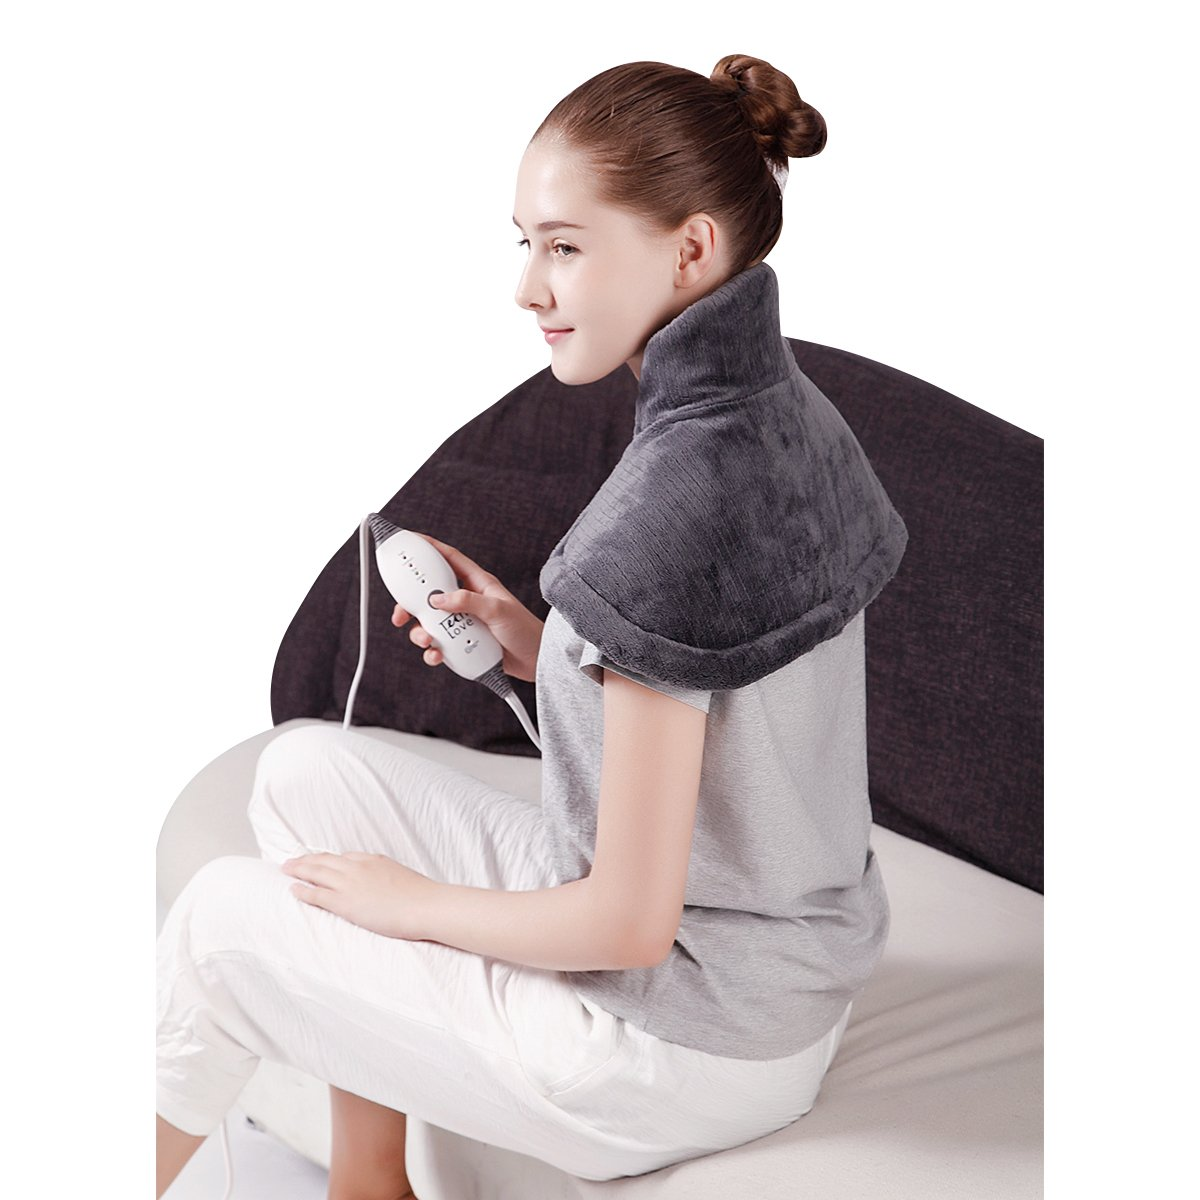 "TechLove Electric Heating Pad for Neck Shoulder and Upper Back Pain Relief Moist/Dry Heated Pad with Auto Shut Off 14"" x 22"" - Charcoal Gray"